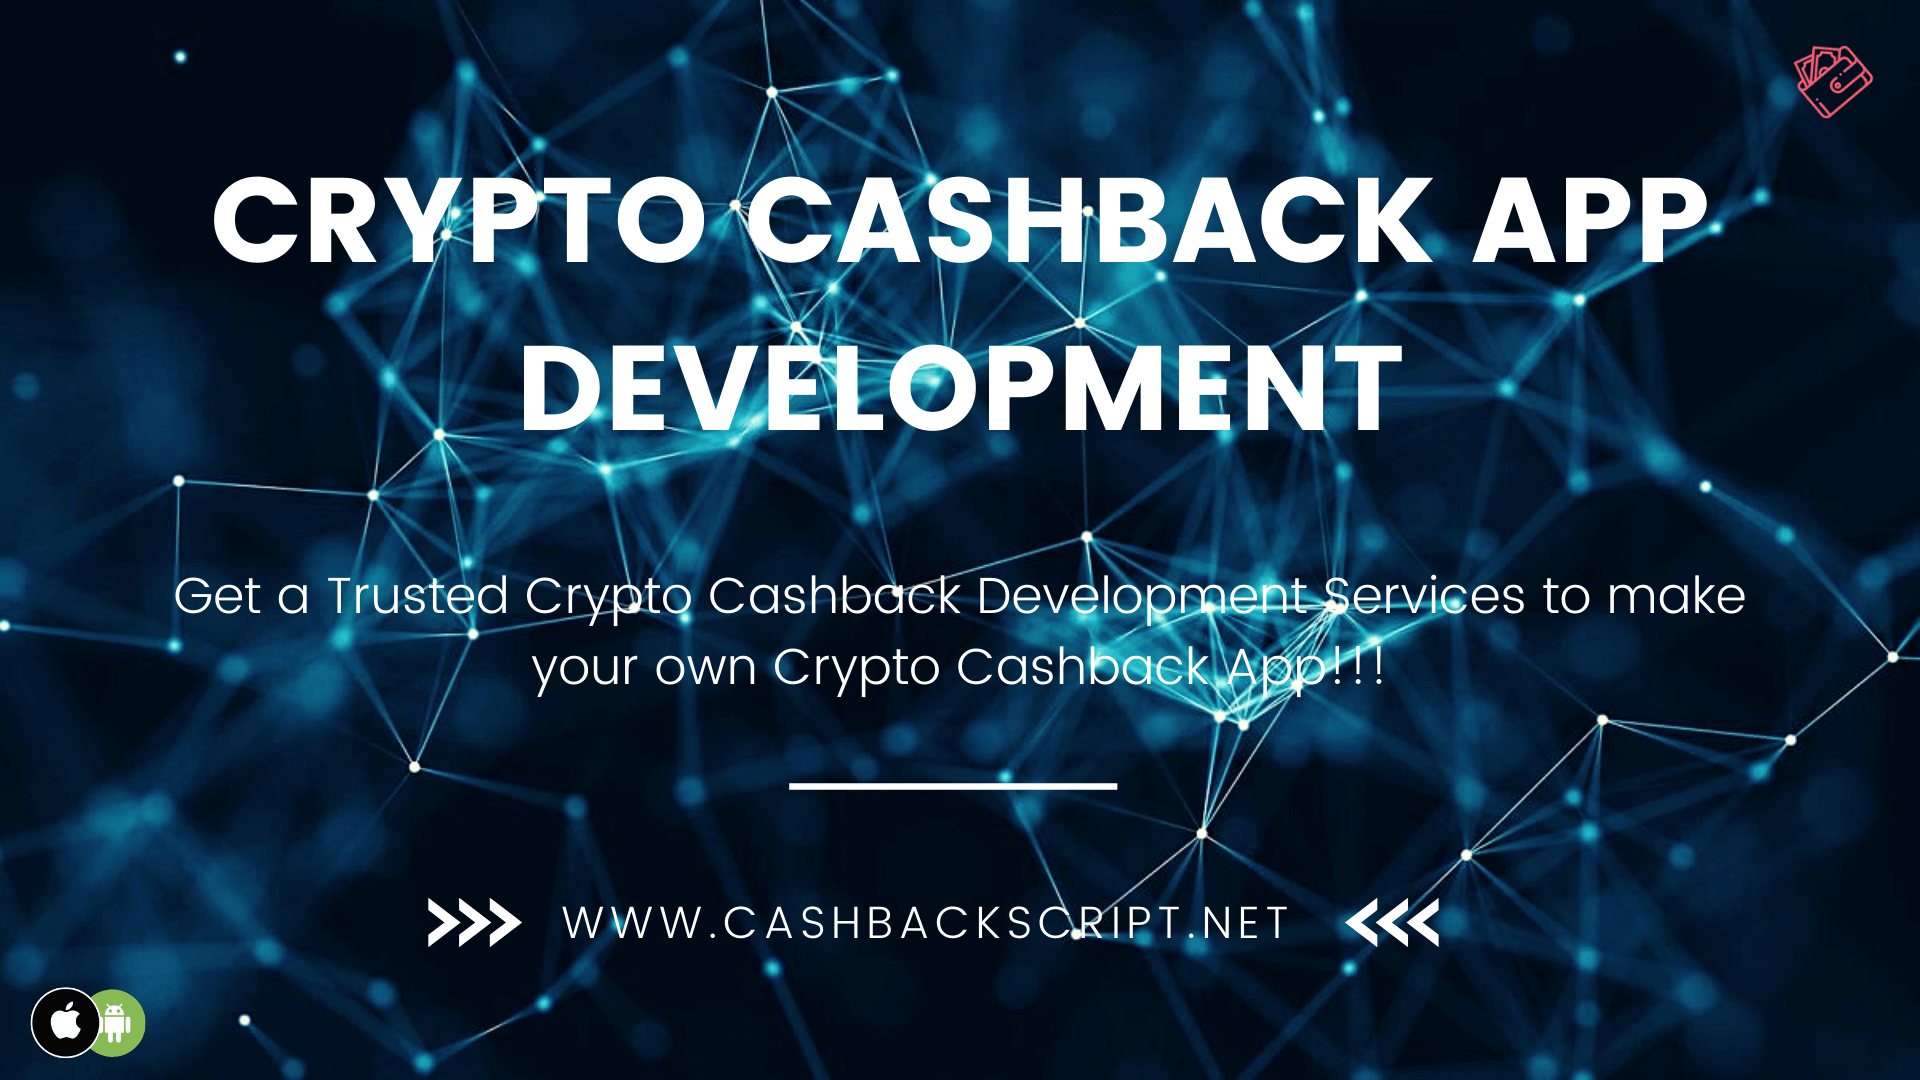 Crypto Cashback App Development to Kick Start your Crypto Cashback Reward Business​